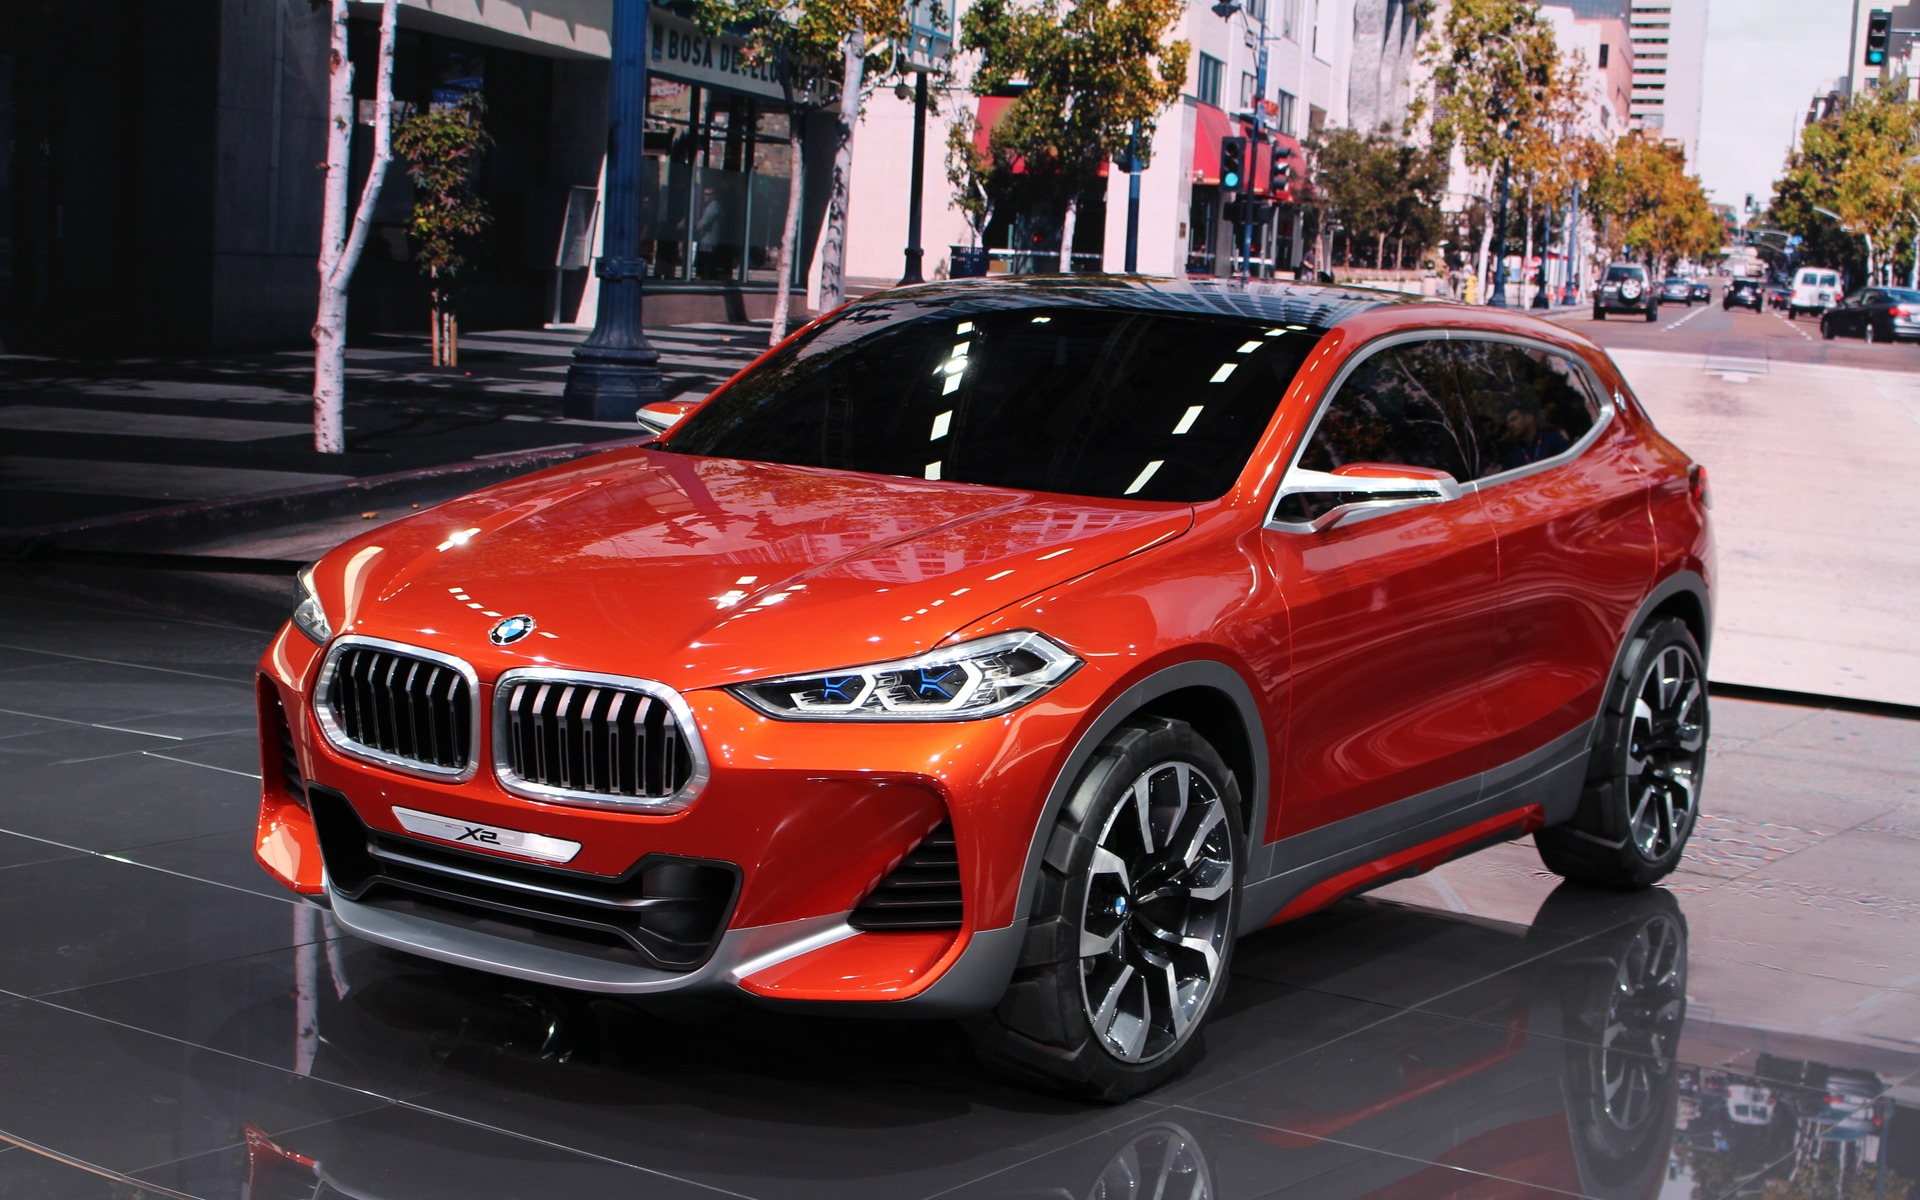 bmw x2 concept unveiled in paris the car guide. Black Bedroom Furniture Sets. Home Design Ideas